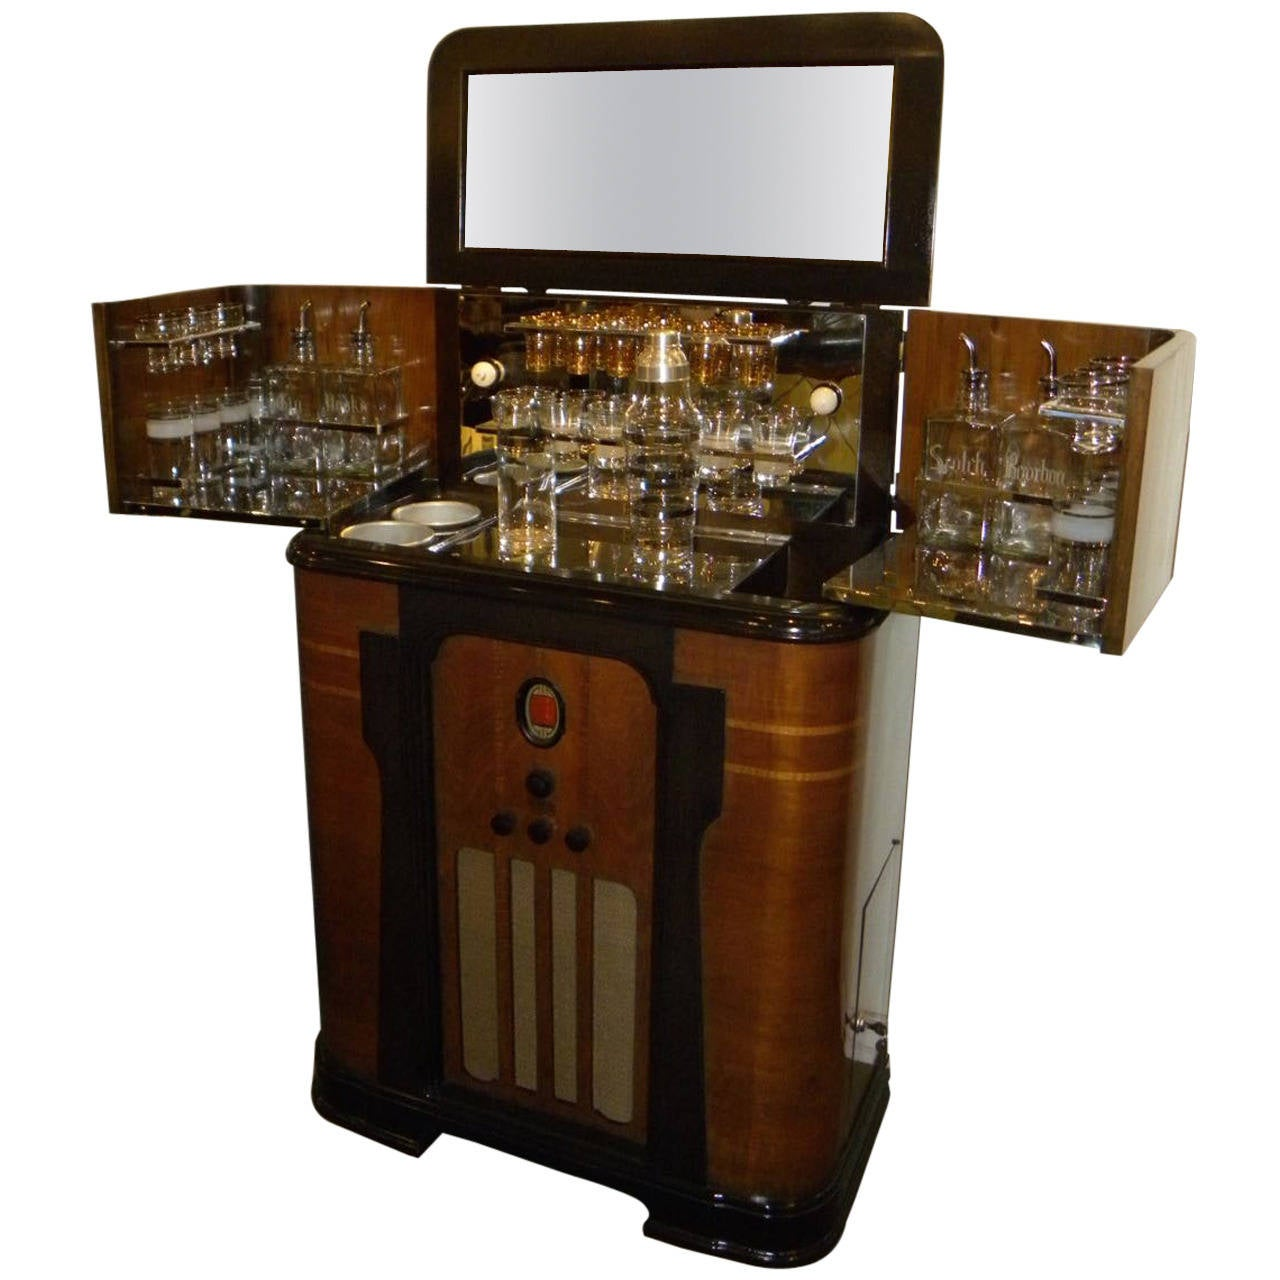 Art deco philco radio bar 1936 at 1stdibs - Deco bar design ...